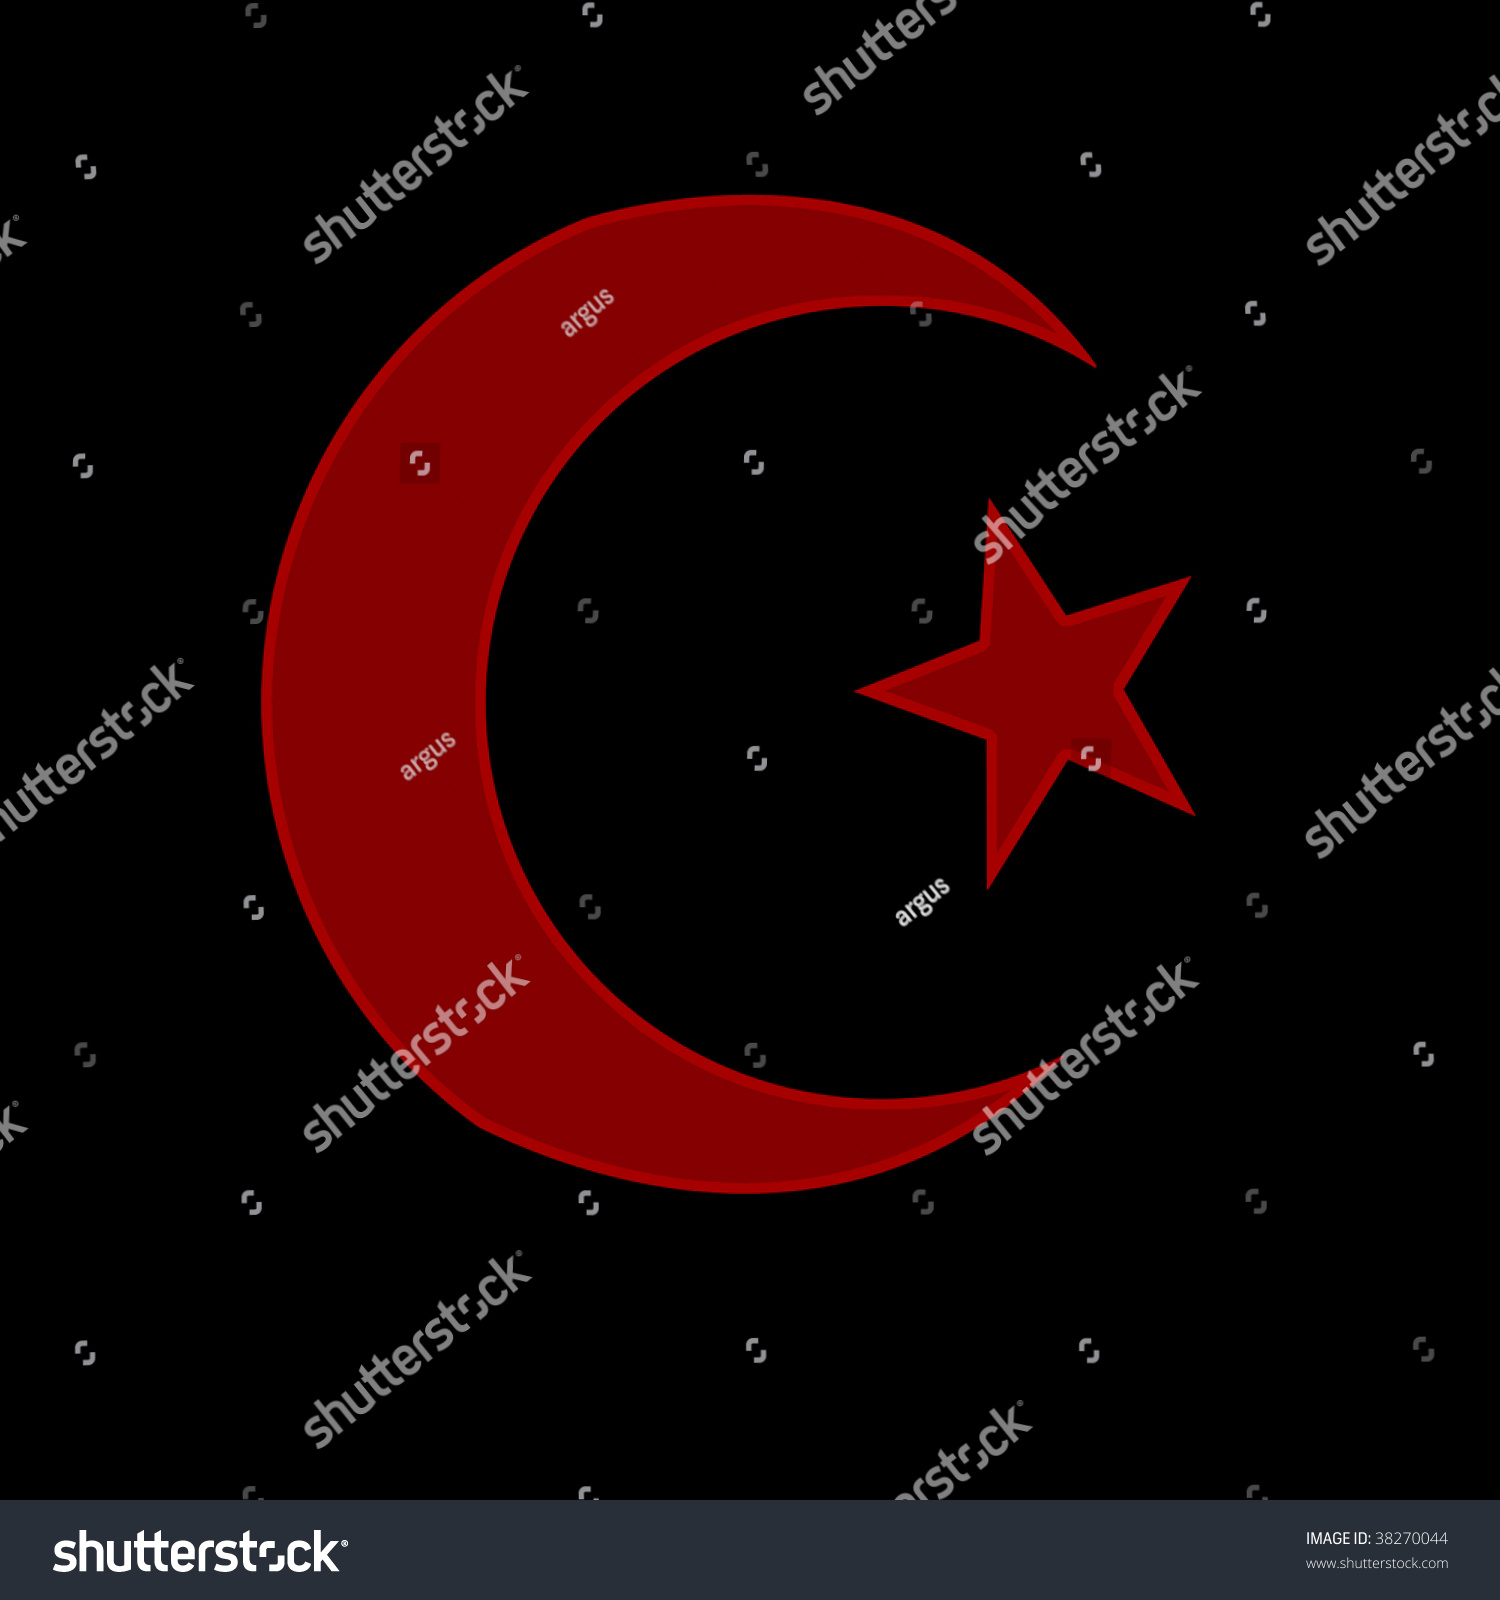 Red Islamic Symbol On A Black Background Stock Photo ...